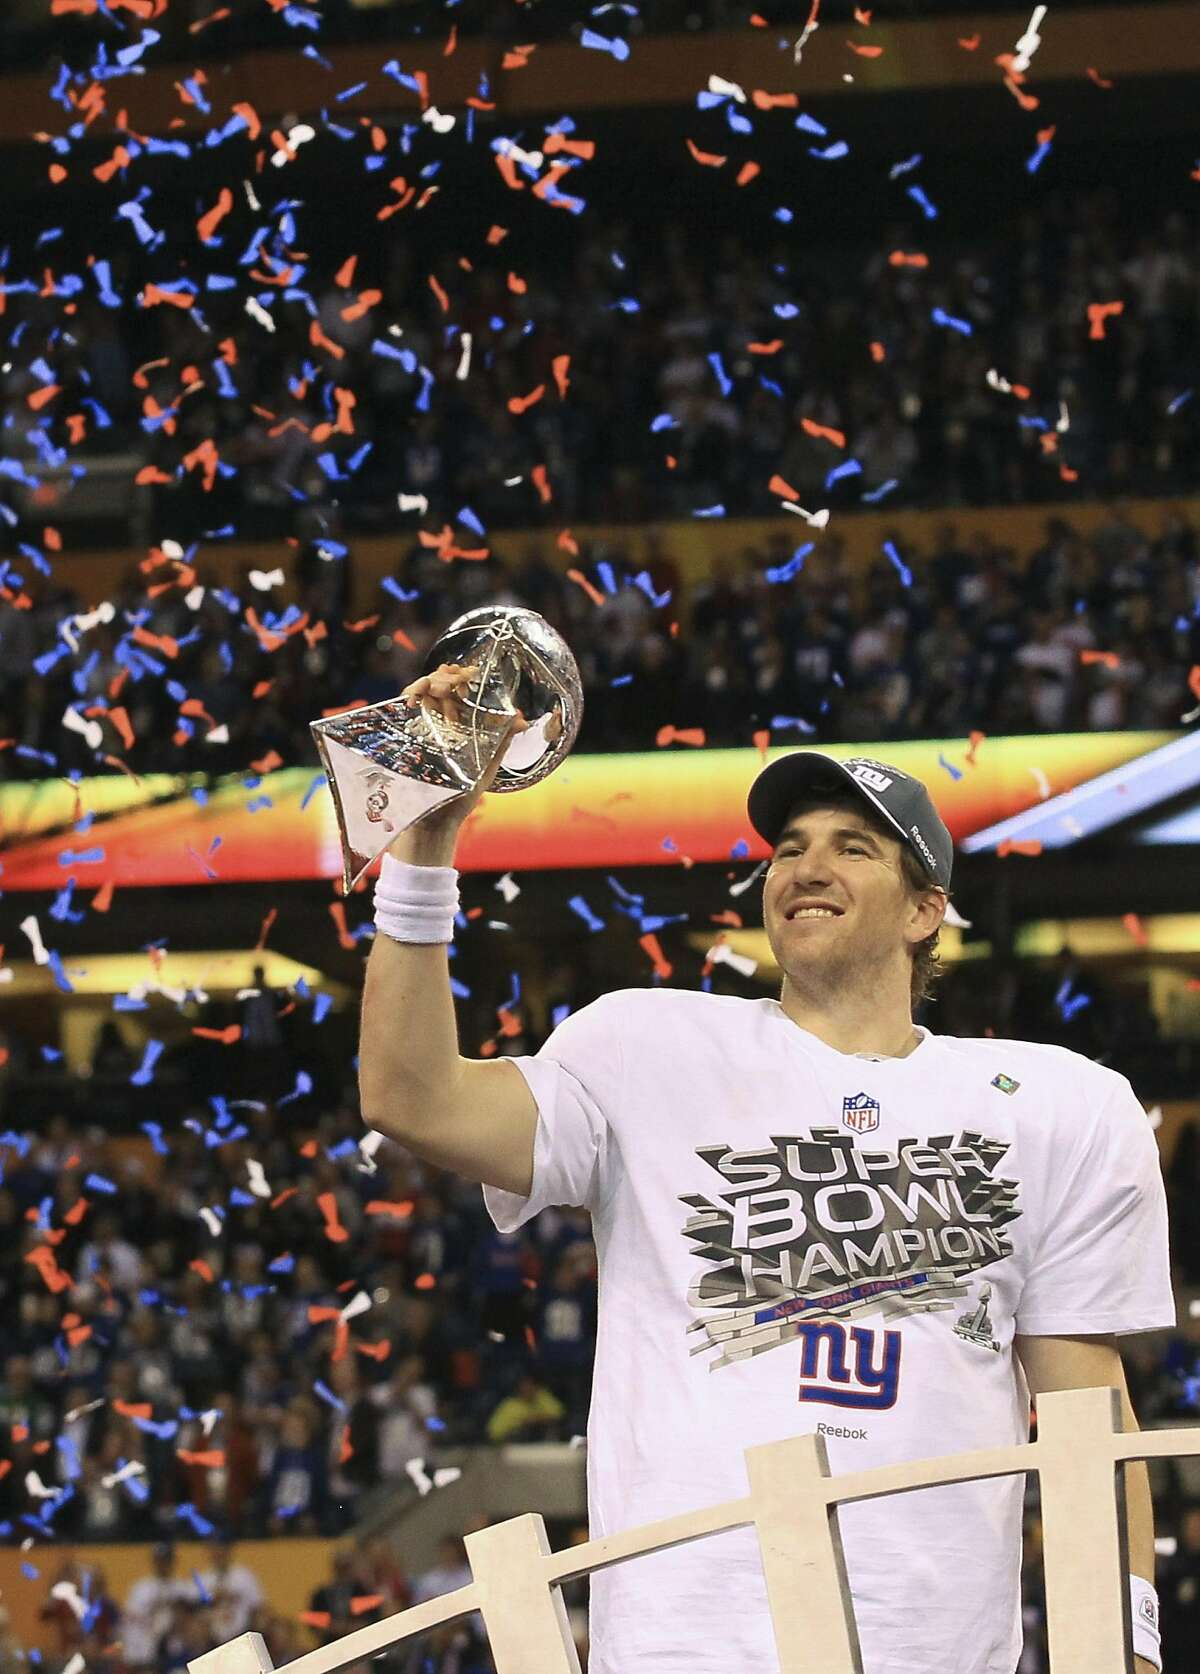 FILE -- Eli Manning of the New York Giants holds the Vince Lombardi Trophy after winning Super Bowl XLVI at Lucas Oil Stadium in Indianapolis, Feb. 5, 2012. Manning, who became a New York sports folk hero after he led the Giants to two upset victories in the Super Bowl, is retiring from the NFL, the team said on Jan. 22, 2020. (Doug Mills/The New York Times)